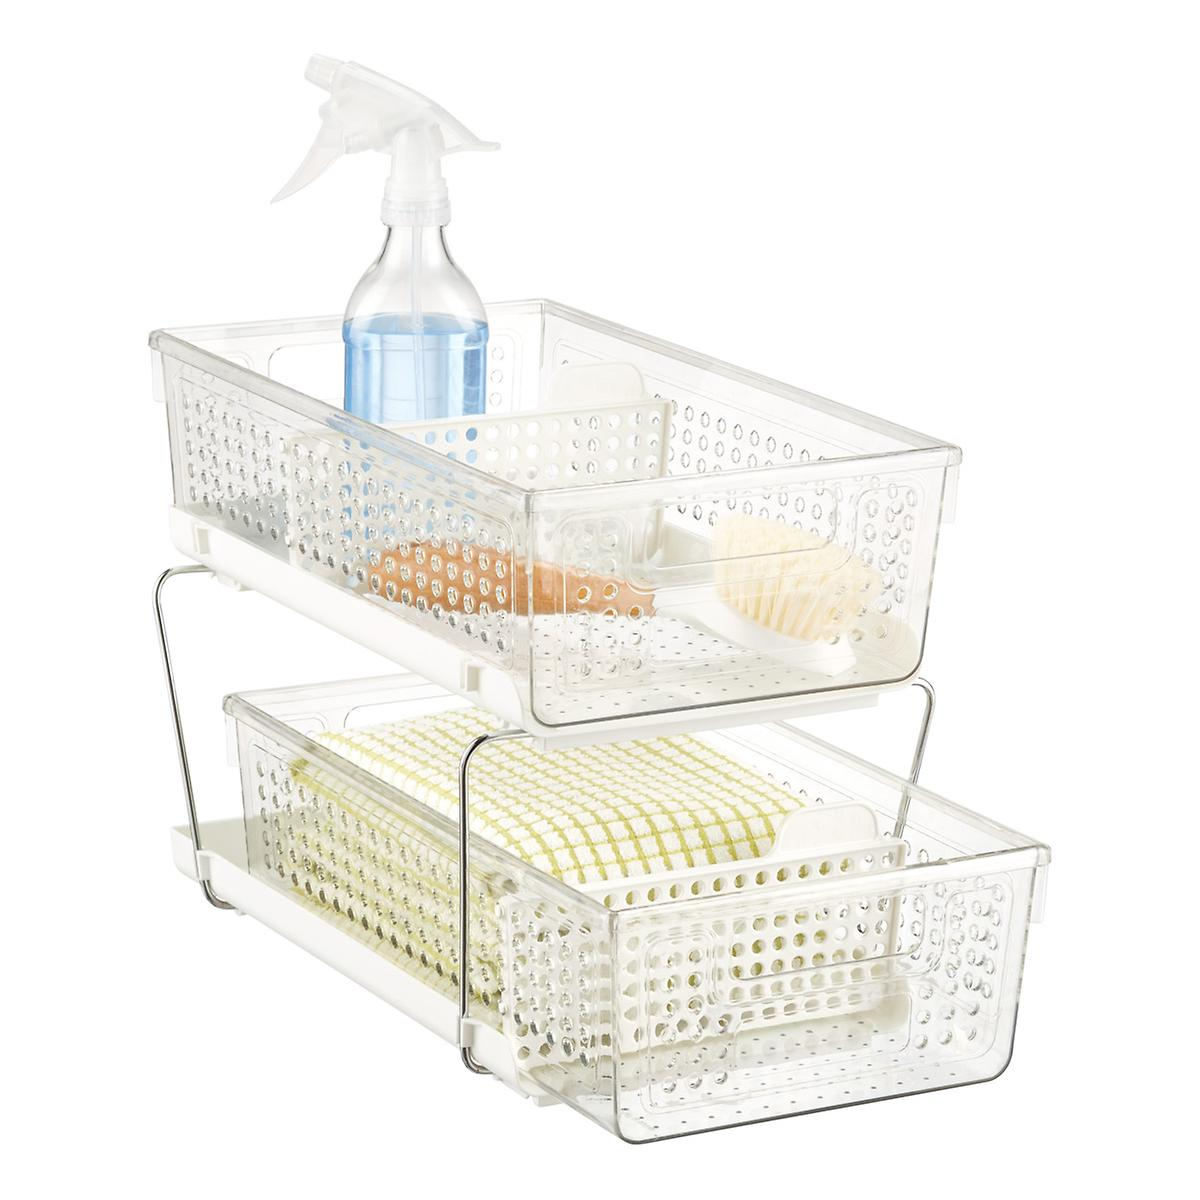 madesmart White 2 Tier Pull Out Cabinet Organizer